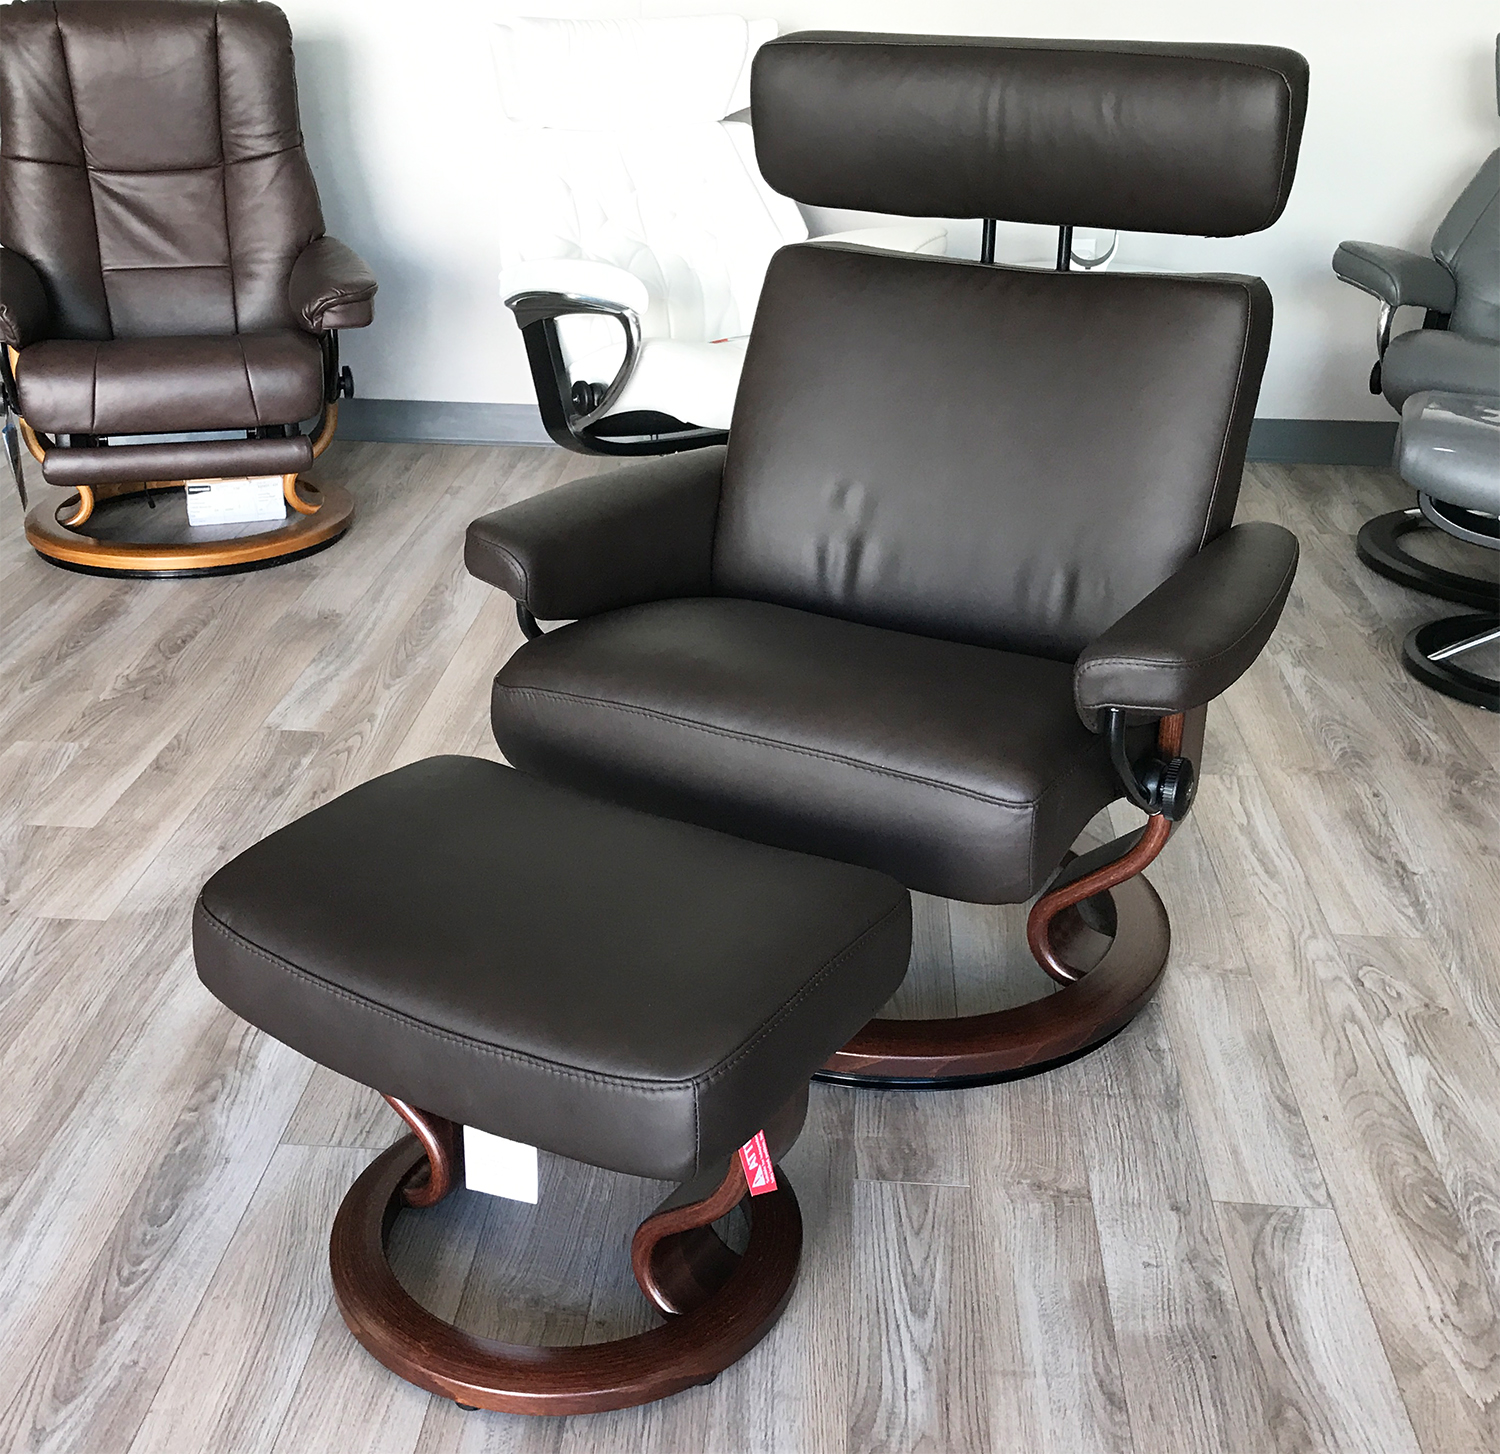 Stressless Taurus Paloma Mocca Leather Recliner Chair and Ottoman by Ekornes